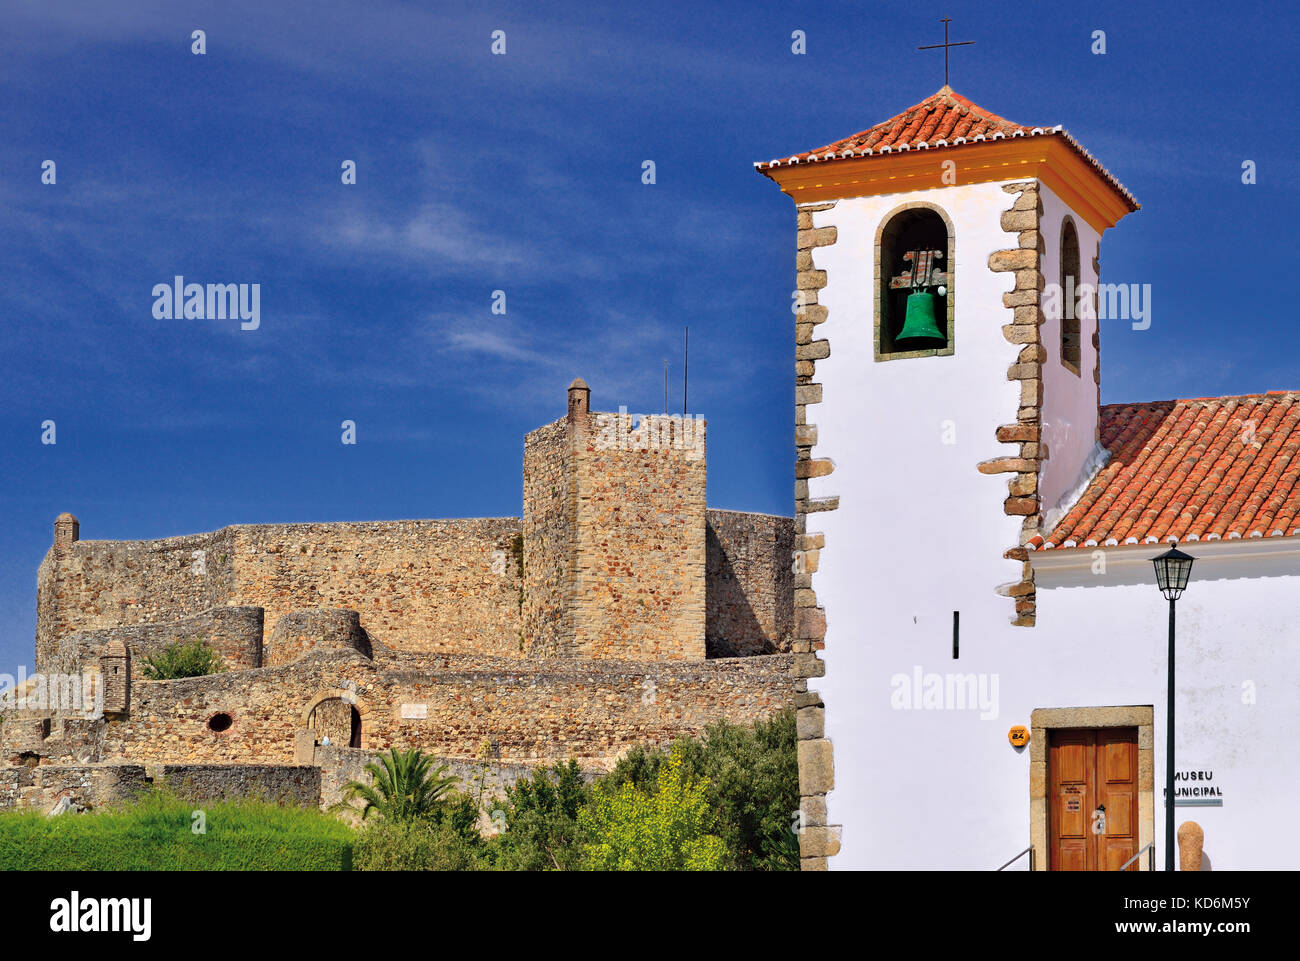 Portugal: Medieval church and castle in historic village Marvao - Stock Image